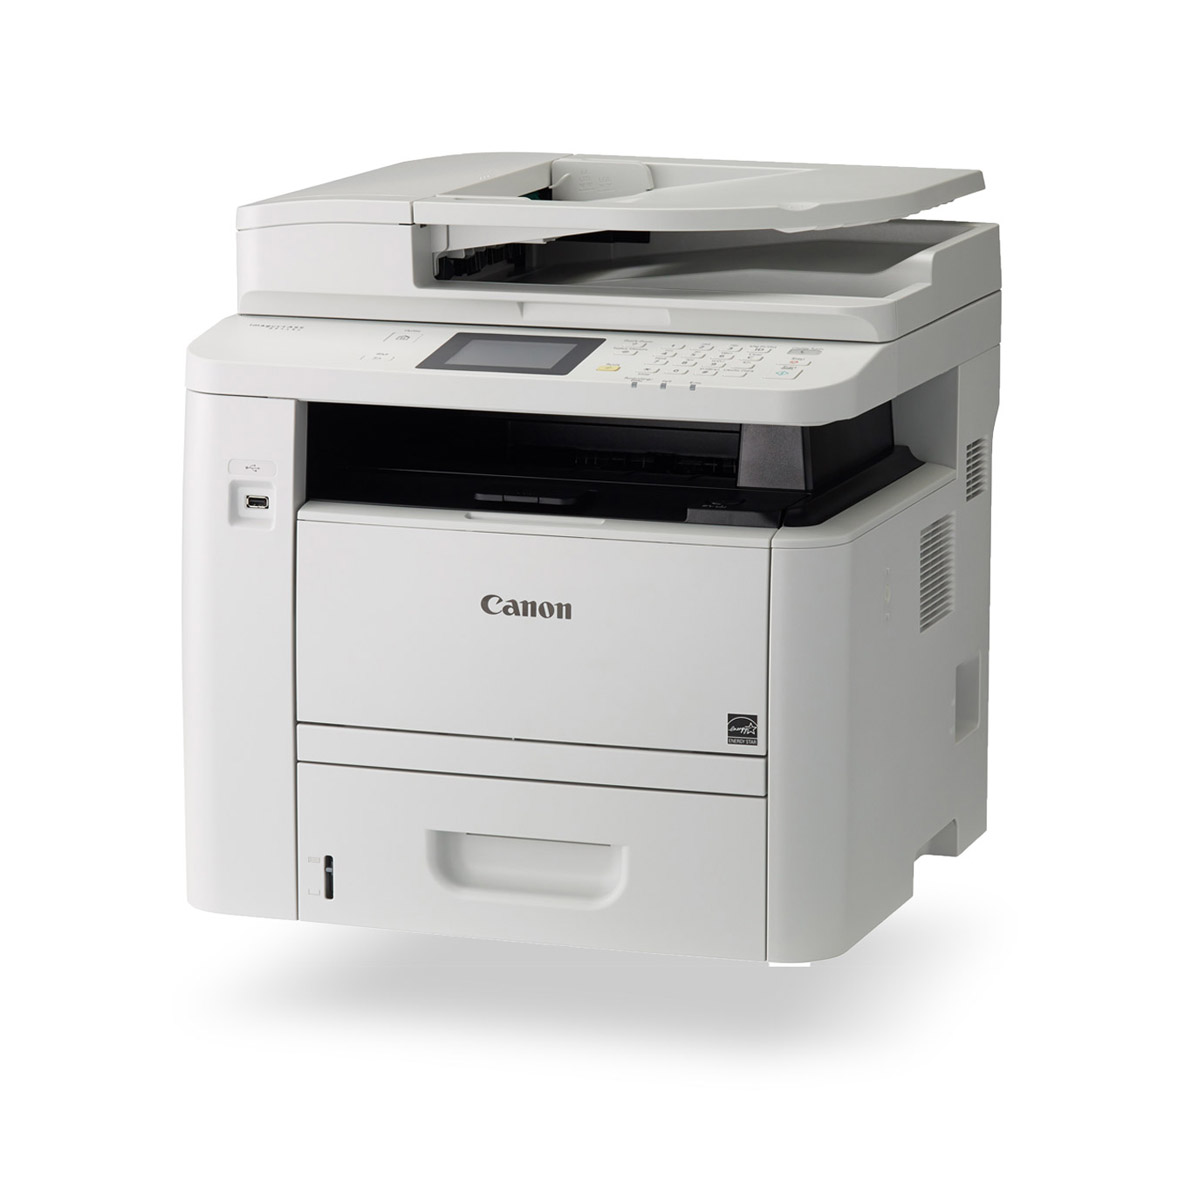 Canon imageCLASS MF419x Multifunction Laser Printer front angle